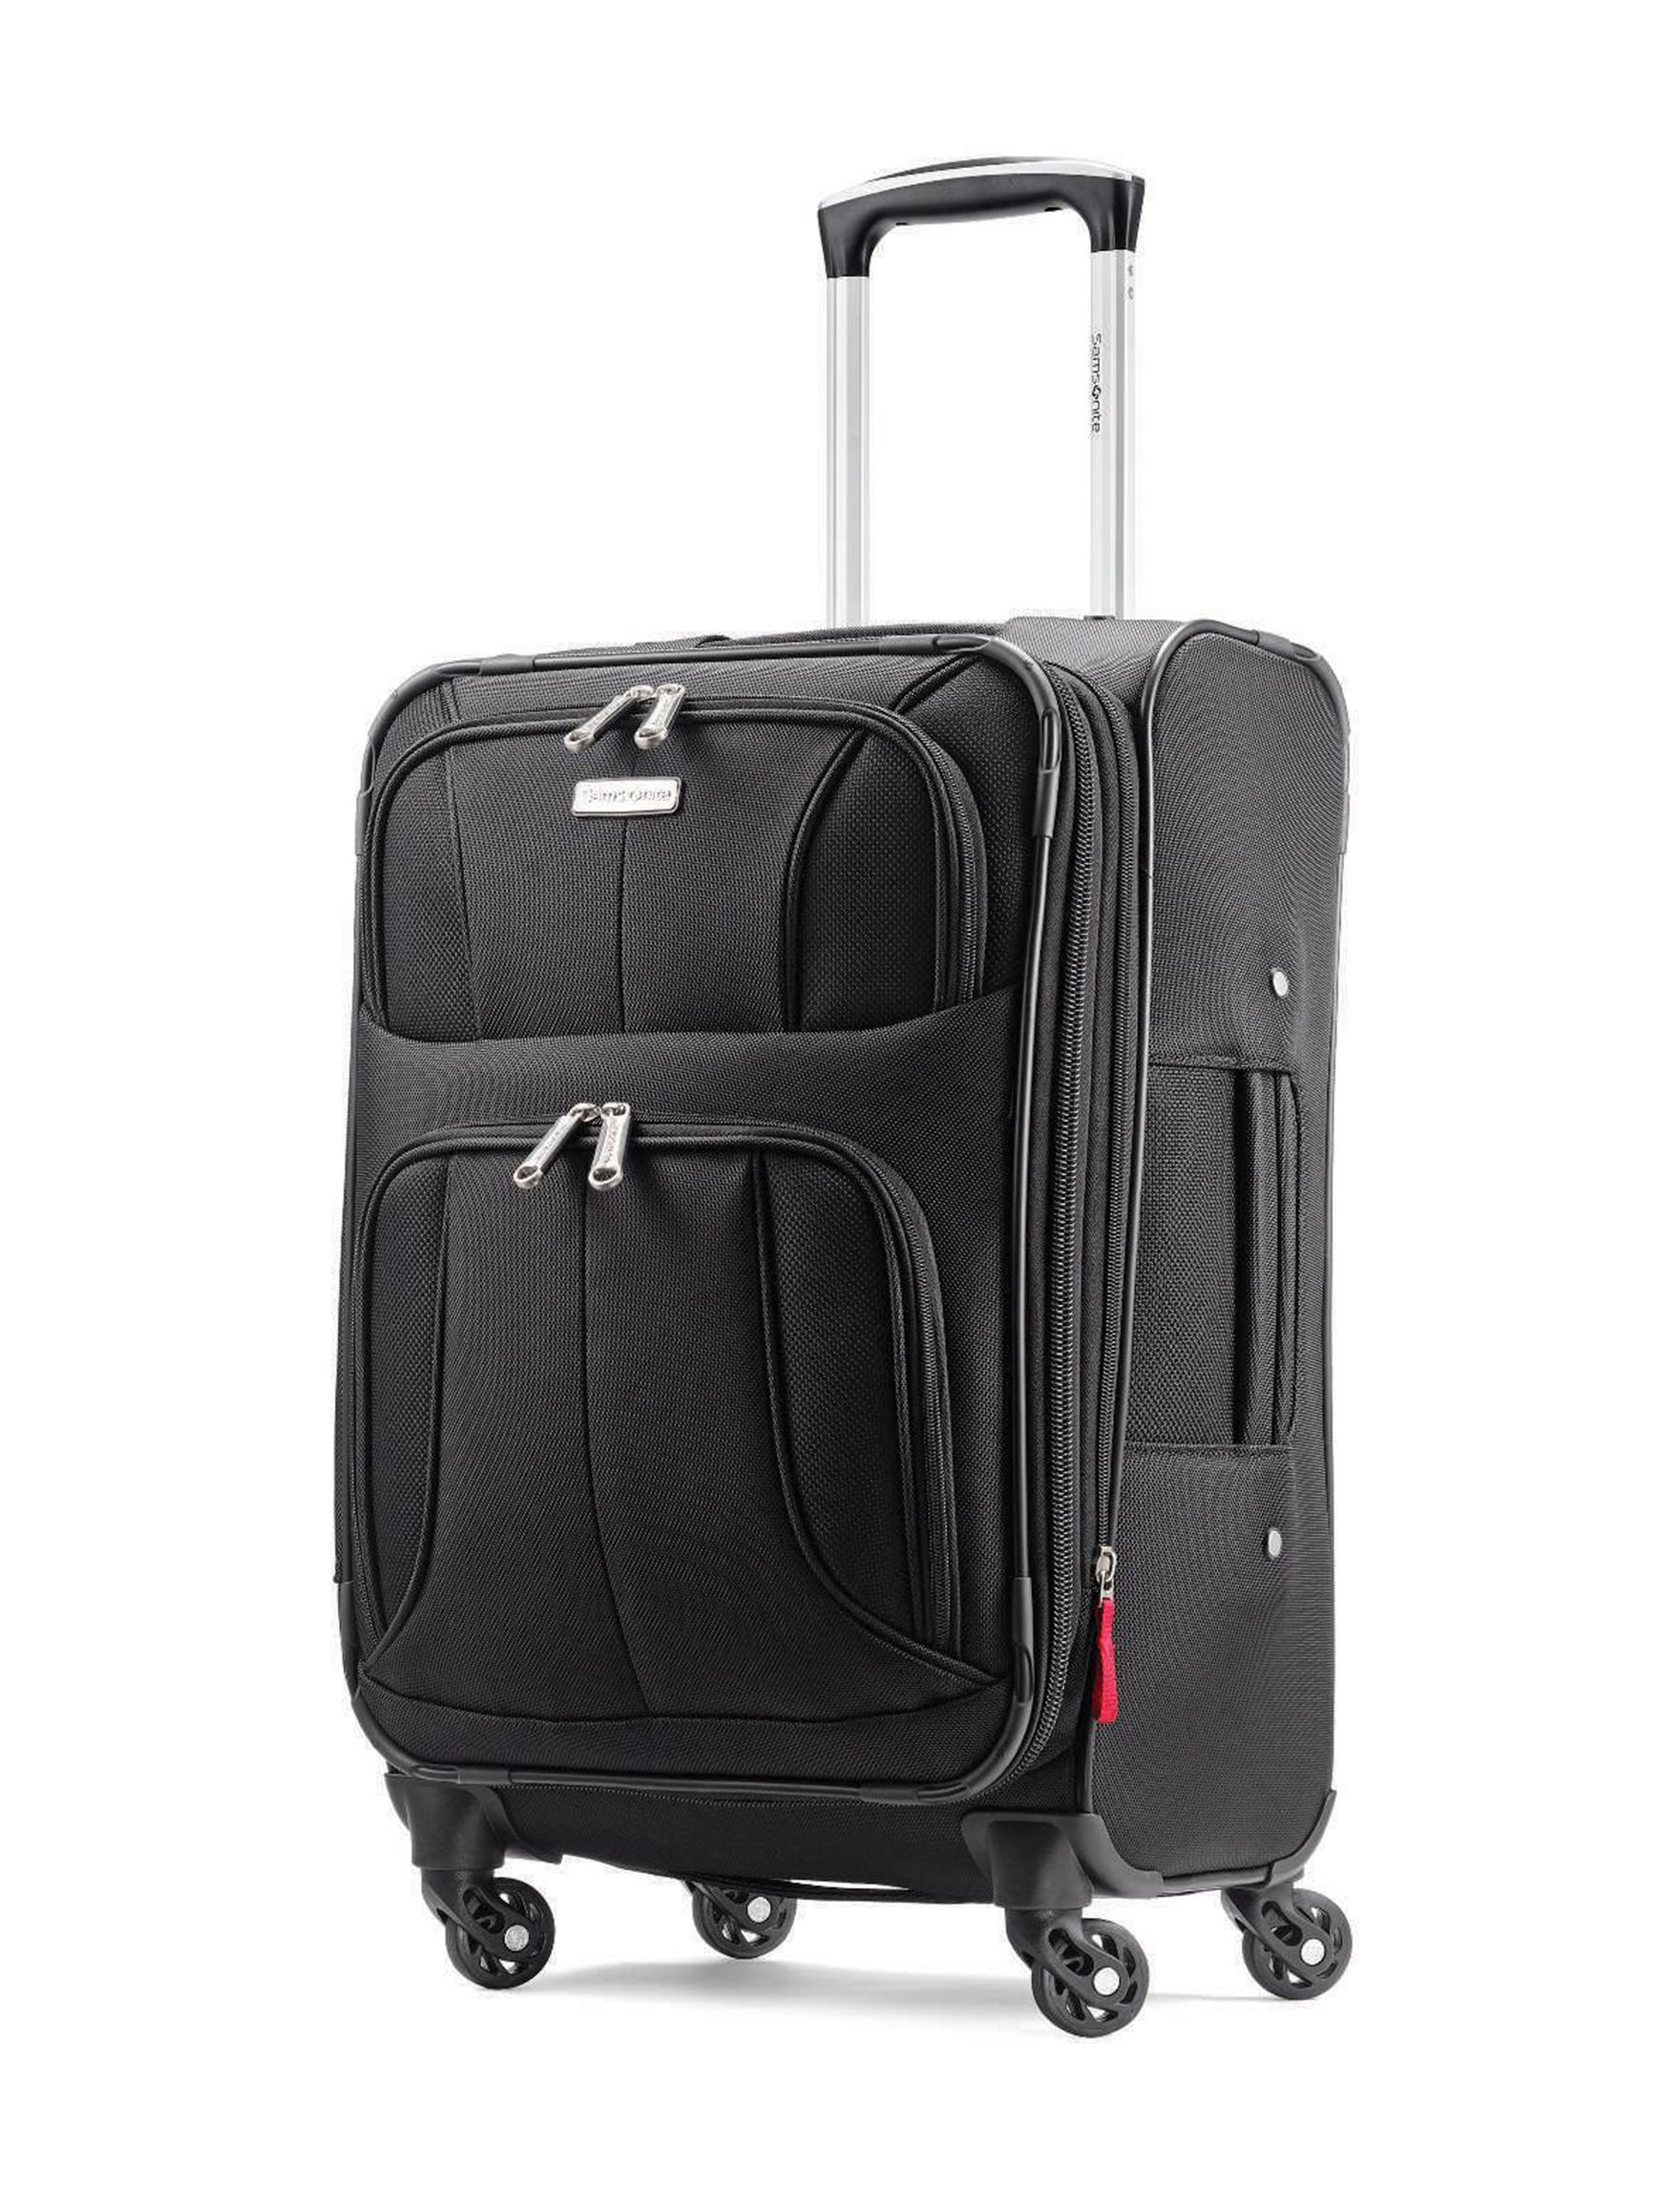 Samsonite Black Softside Upright Spinners